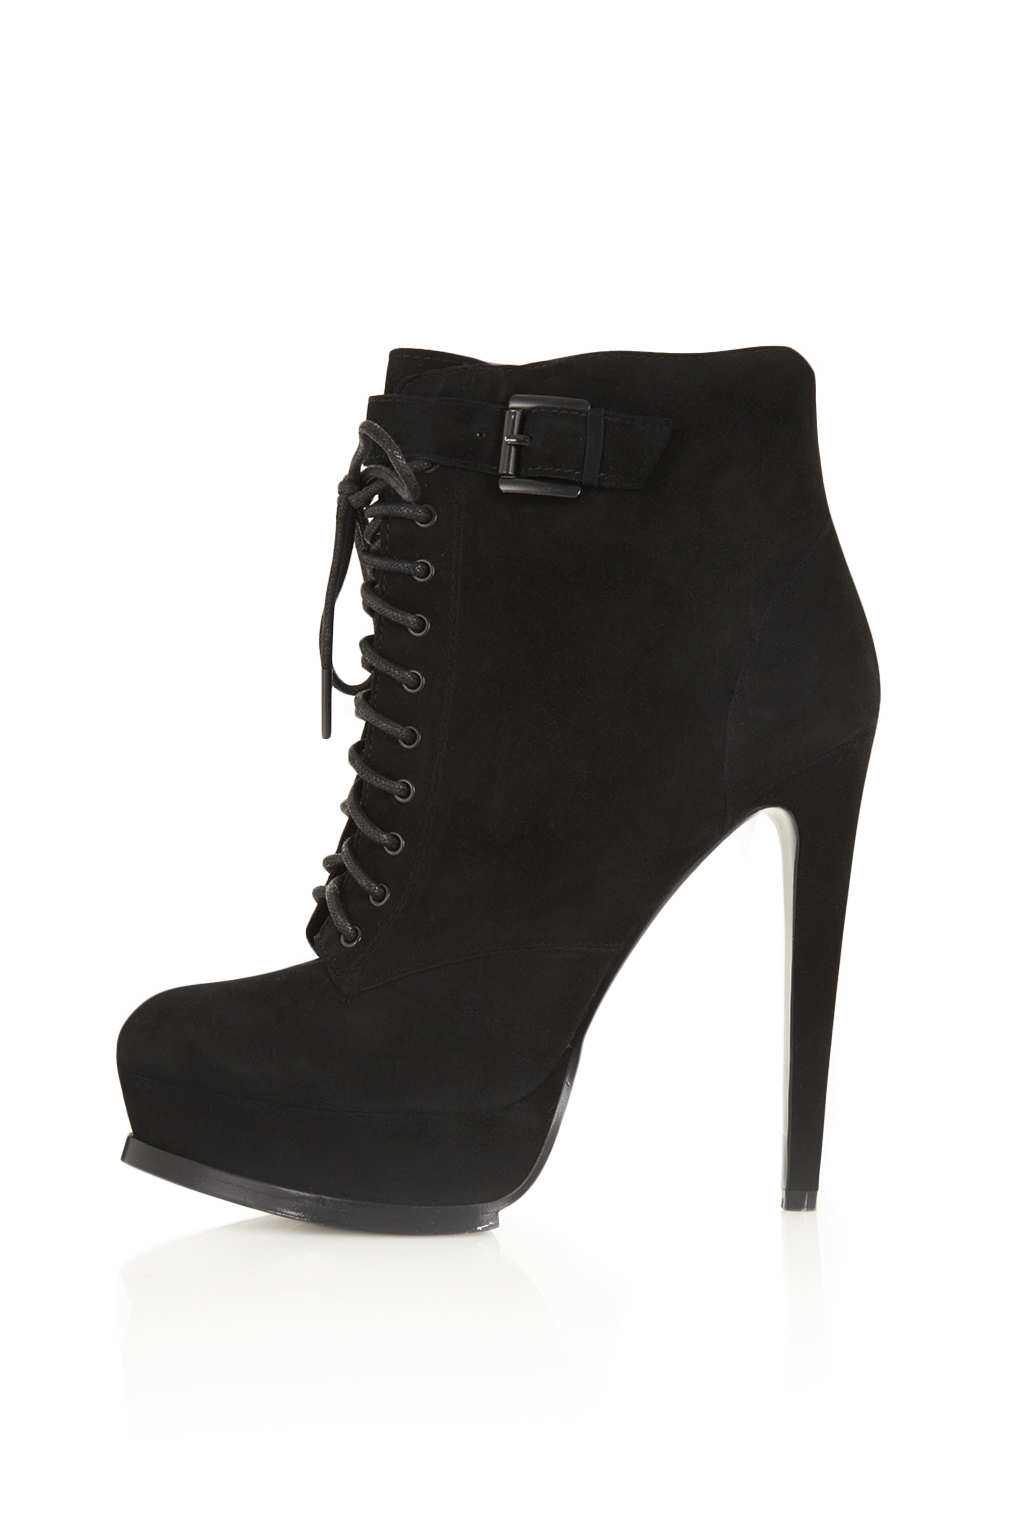 TOPSHOP Priceless Premium Leather Boots in Black